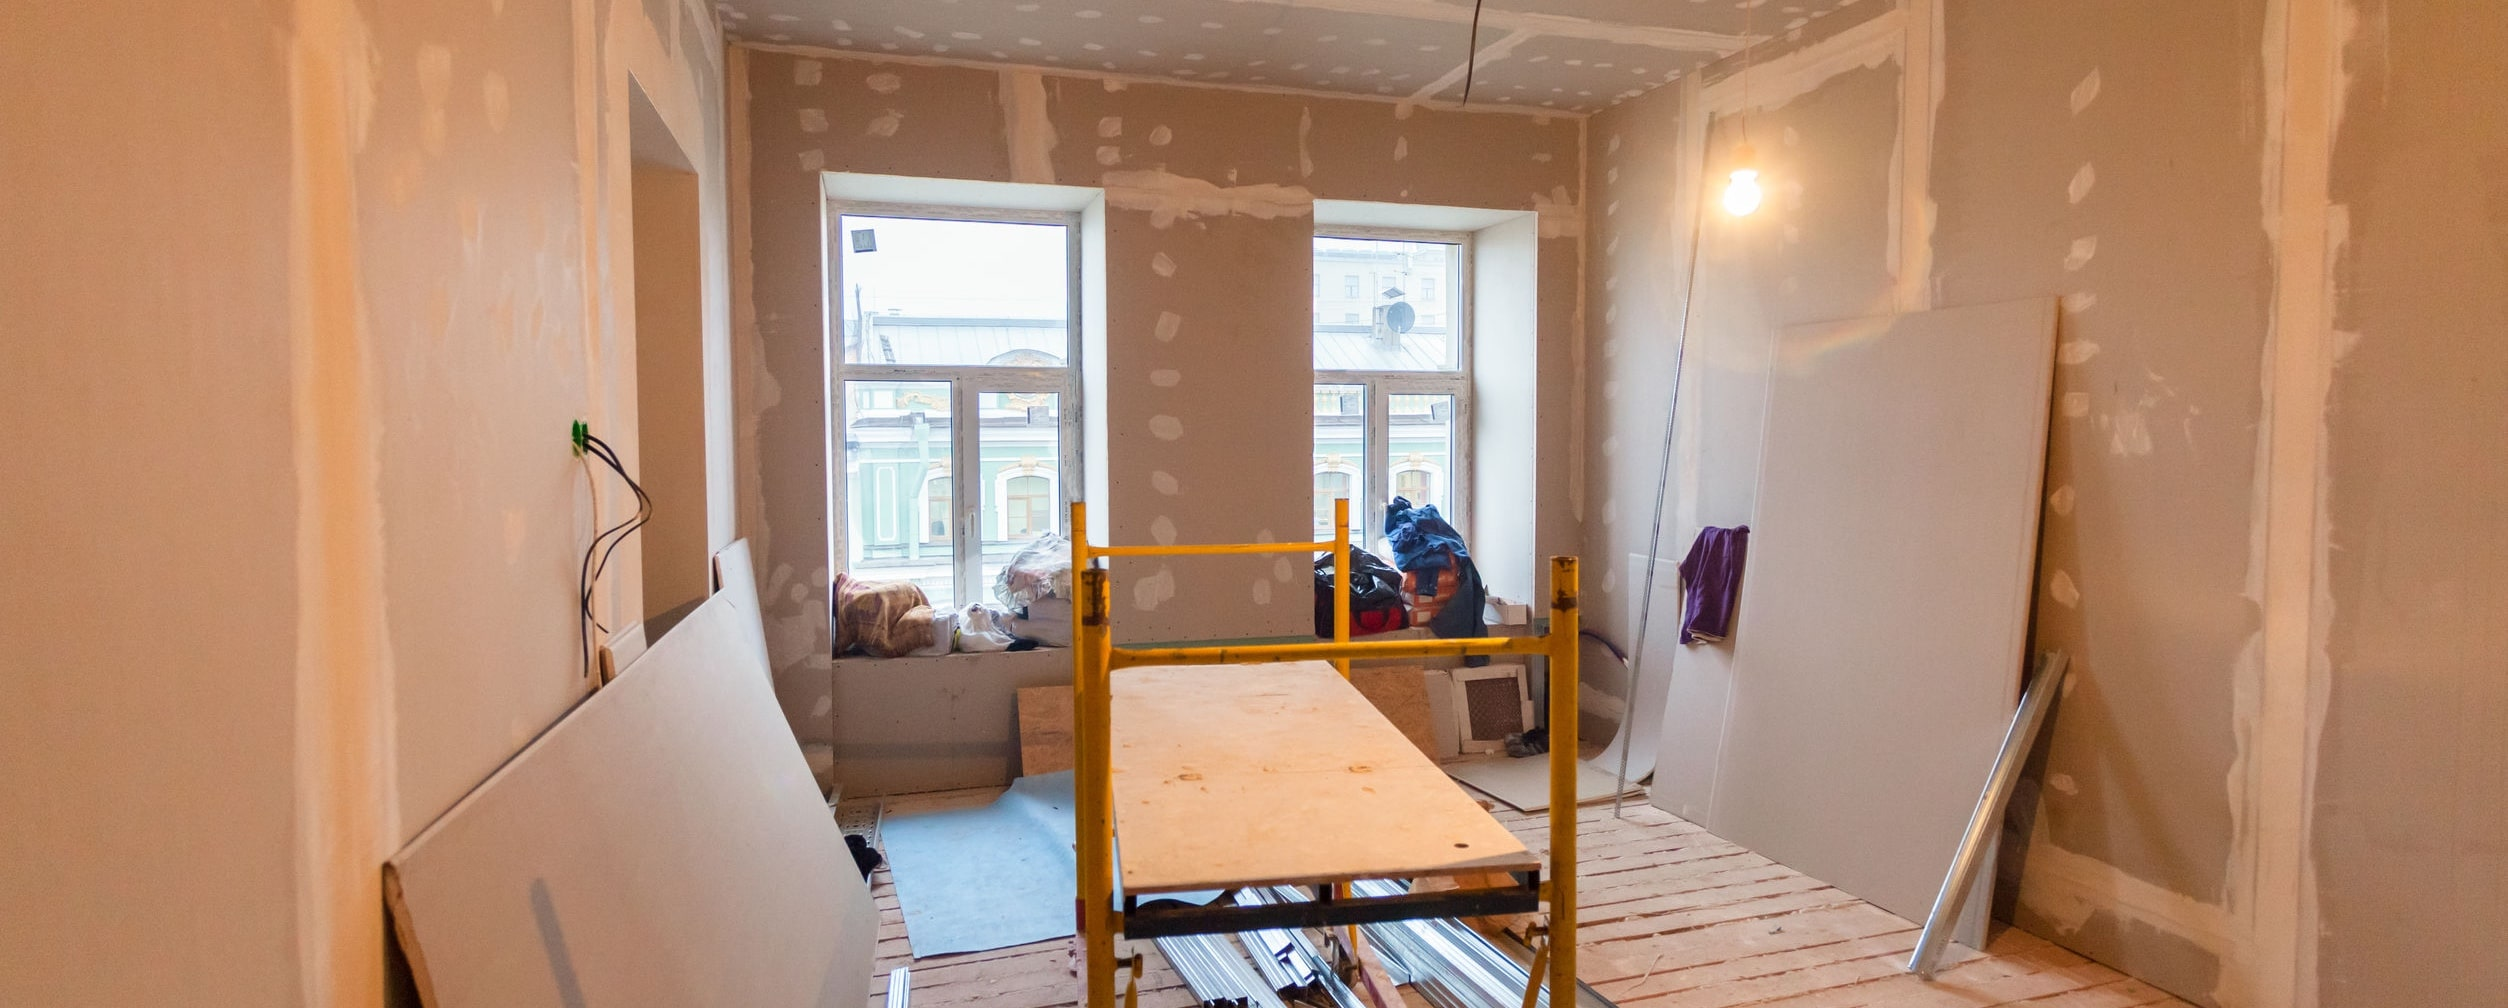 Construction materials in apartment undergoing remodeling